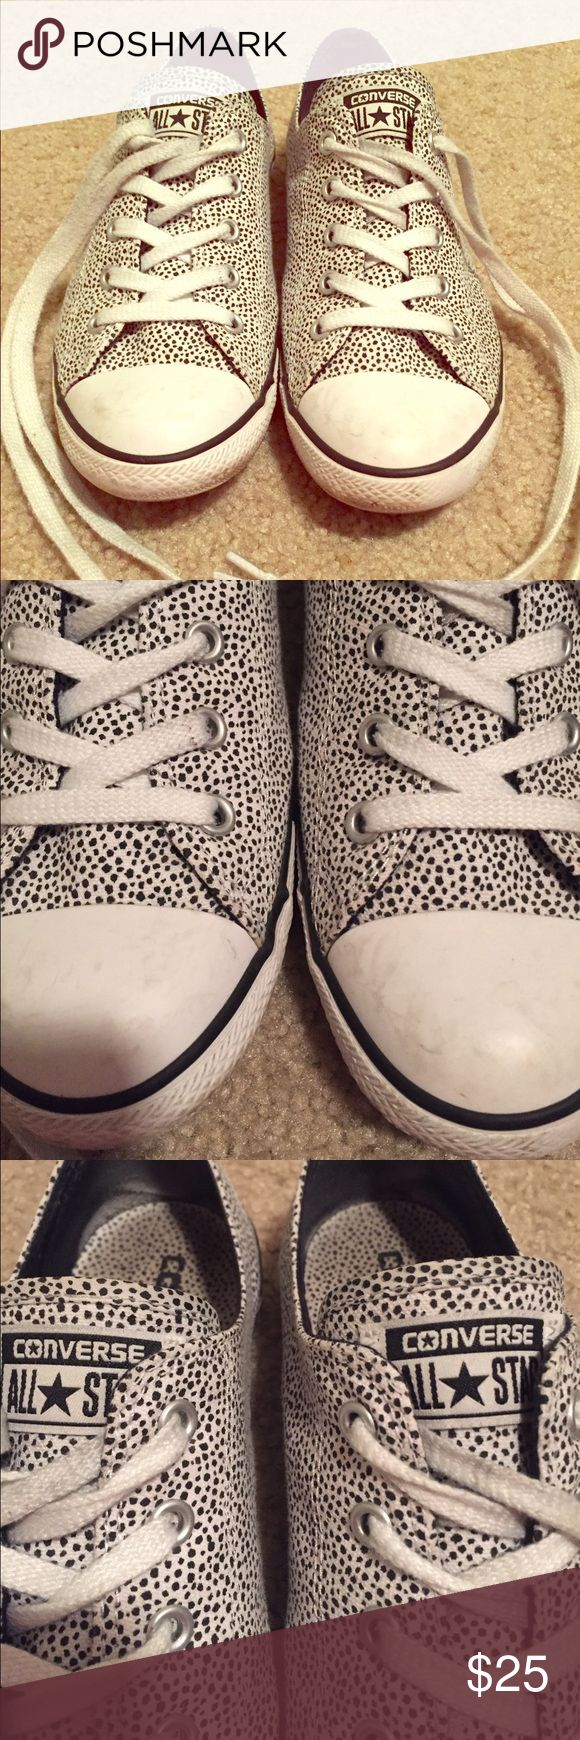 Lady Converse with Dots  Adorable low top ladies dainty style Converse. White with small black dots print. Light wear. Good condition. Size 8. Converse Shoes Sneakers